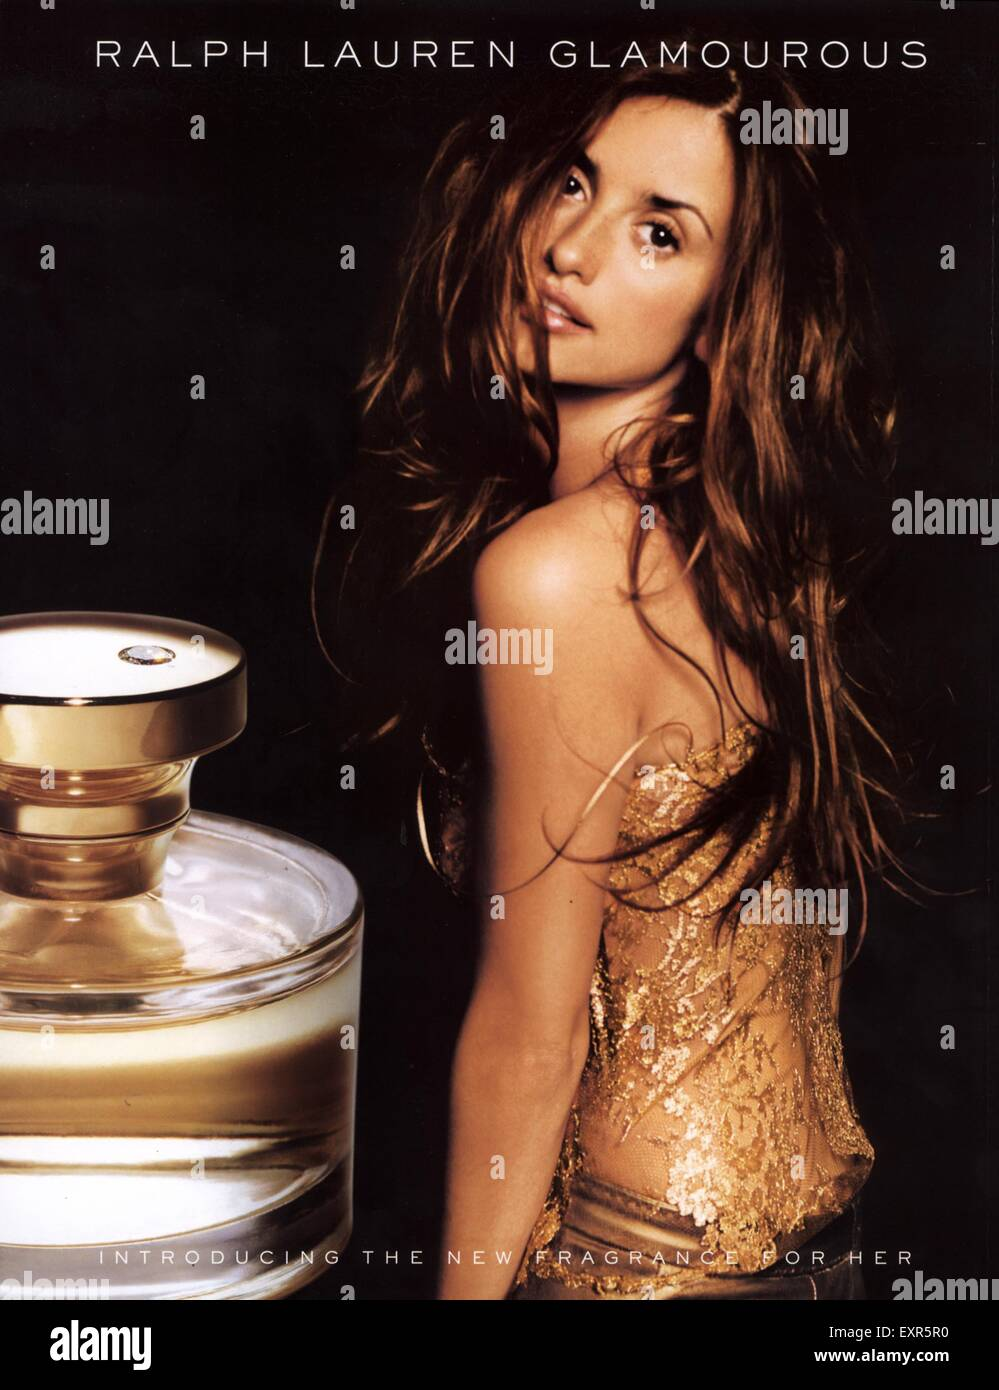 2000s UK Ralph Lauren Glamourous Magazine Advert